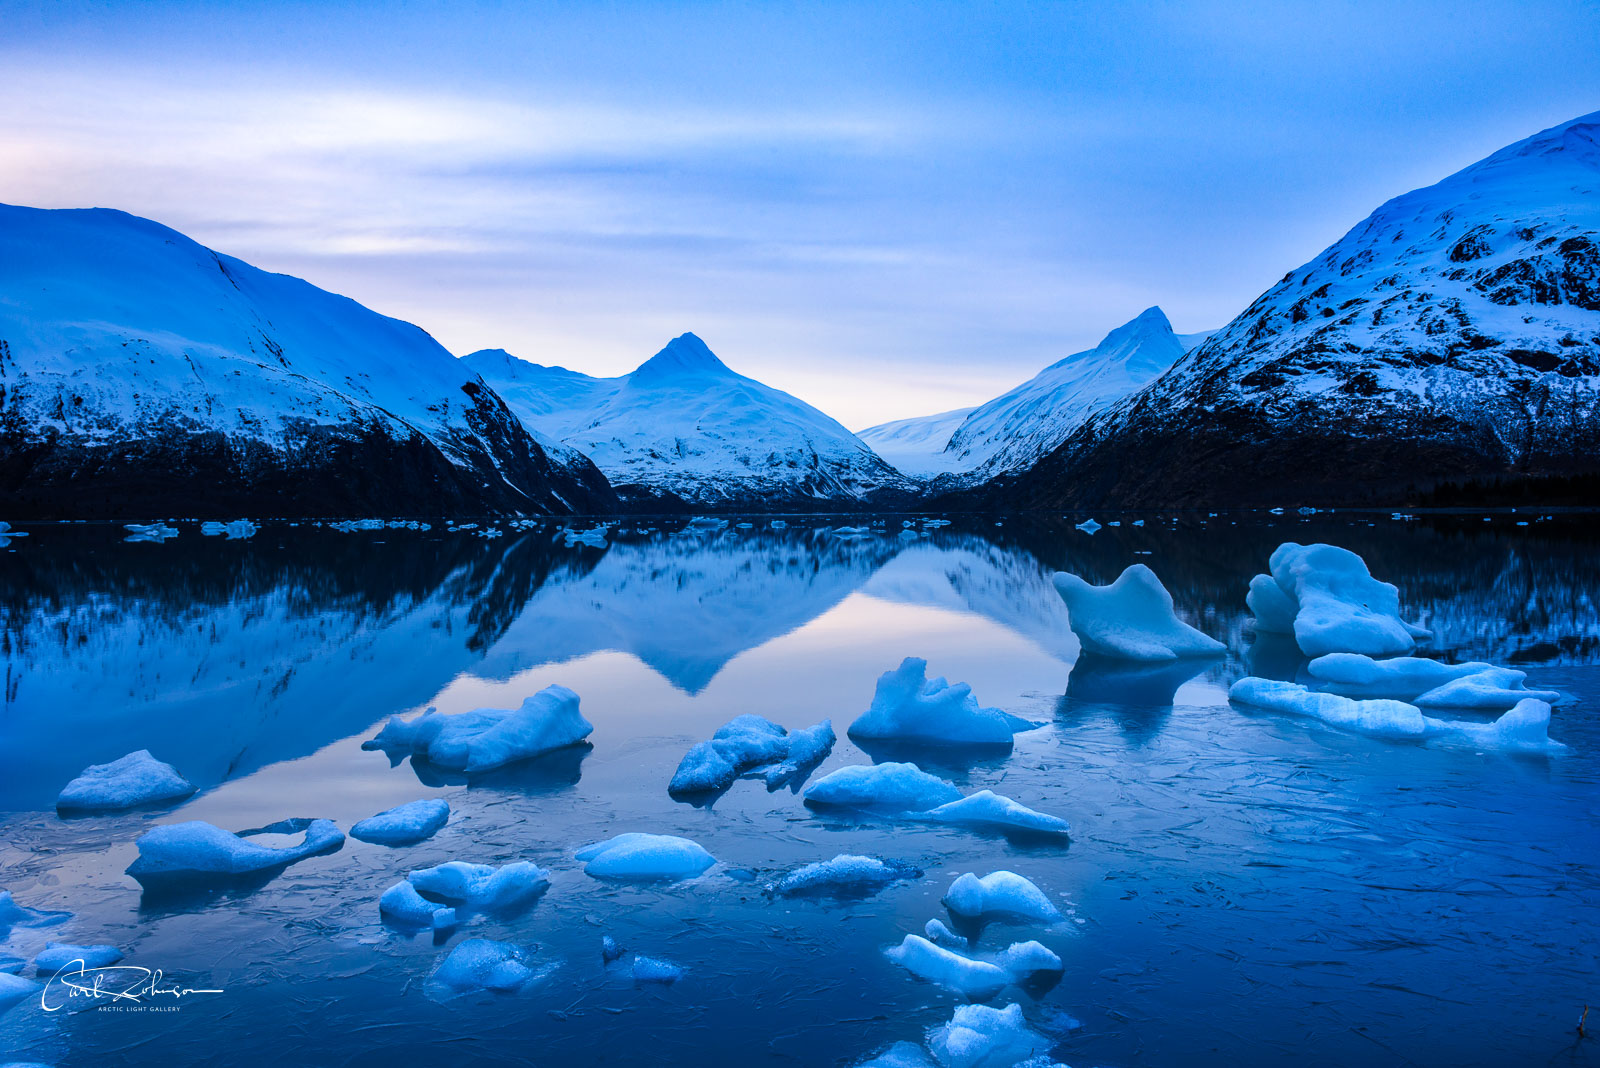 Icebergs near the shoreline in Portage Lake, Chugach National Forest.